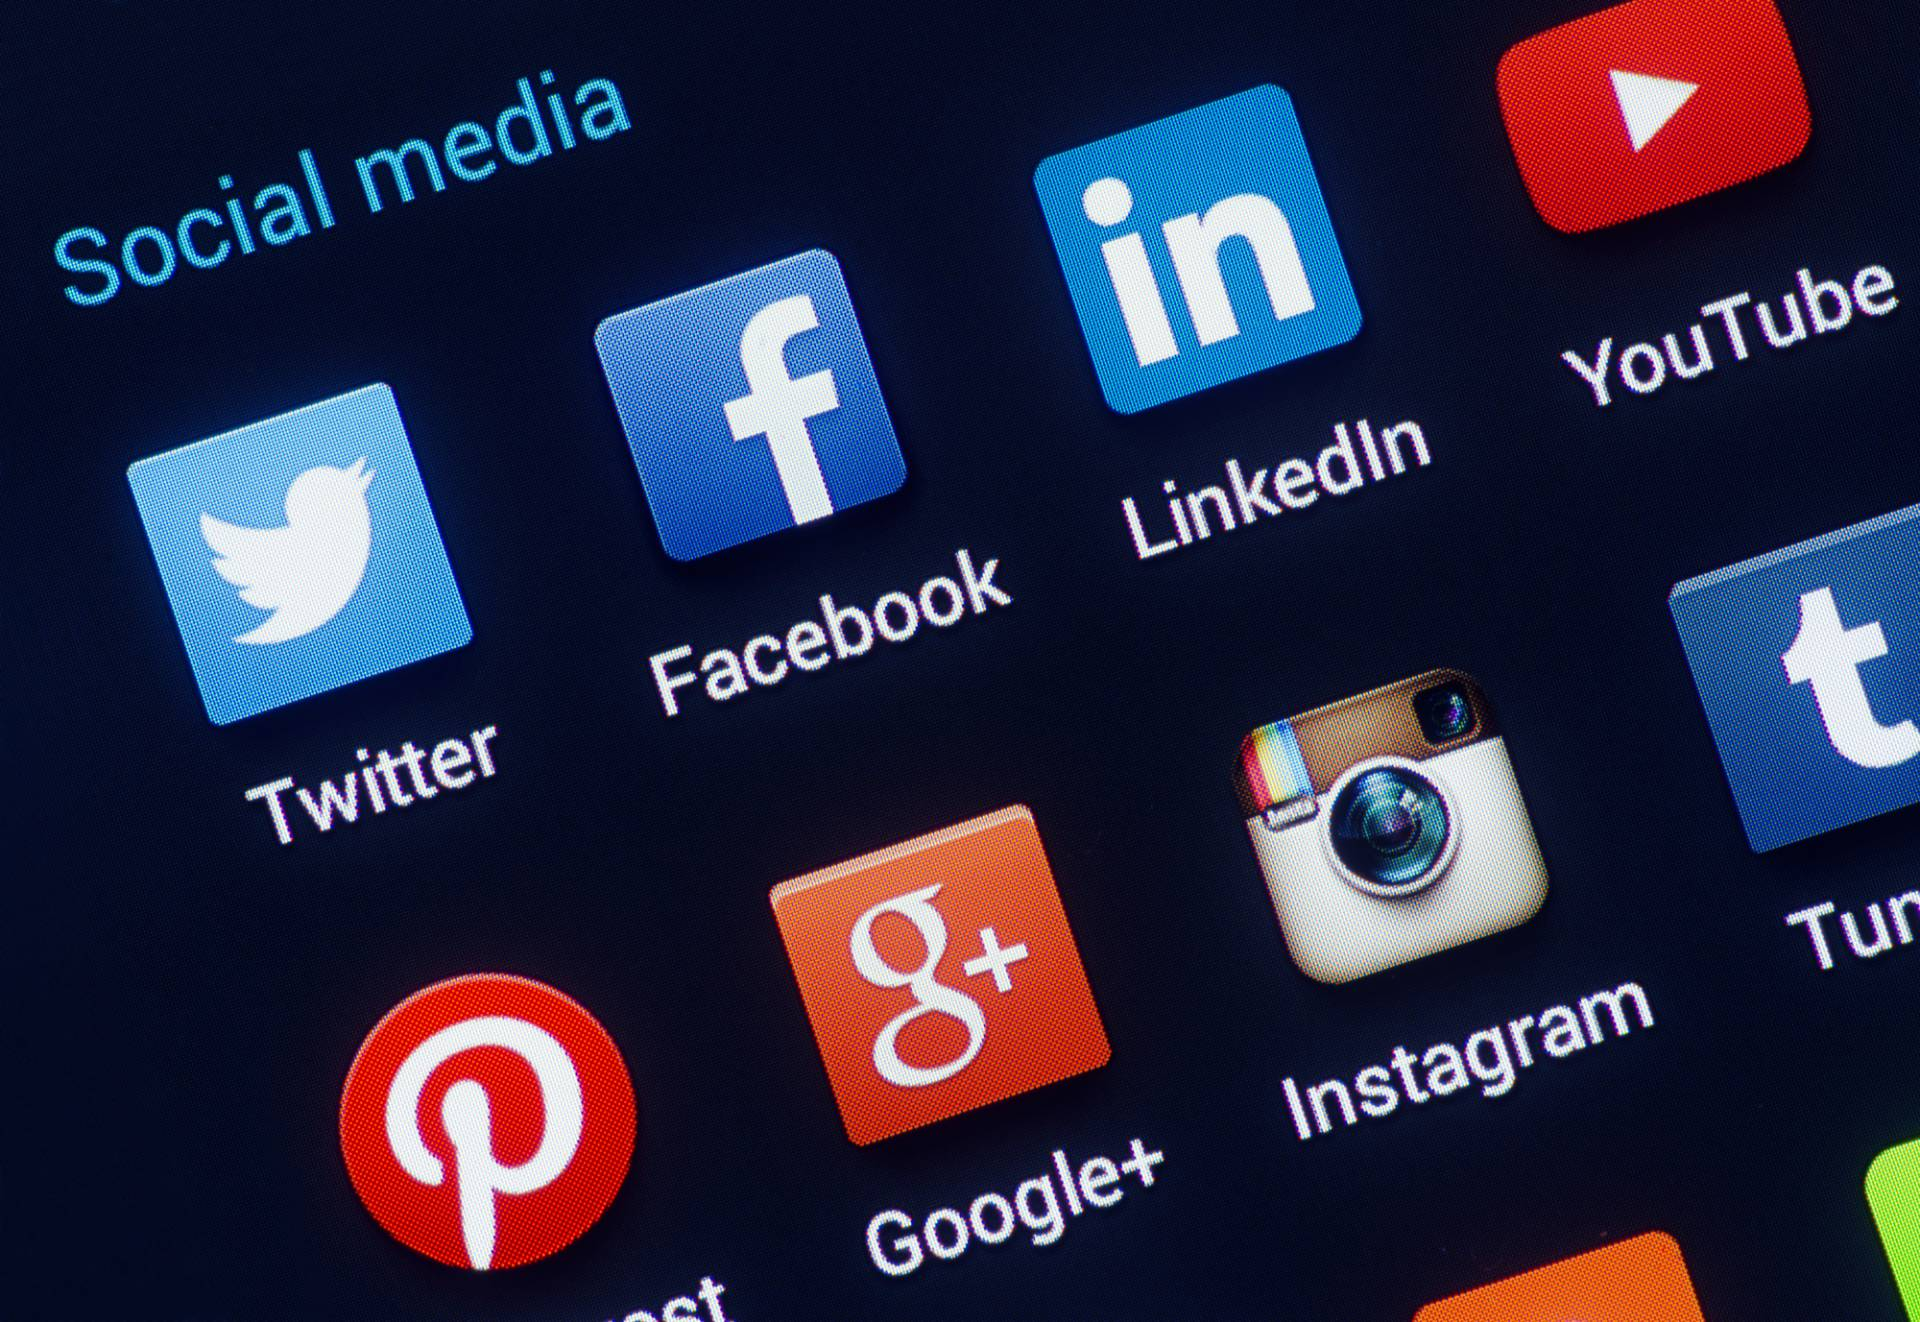 HOW SOCIAL MEDIA CAN SABOTAGE YOUR CLAIM